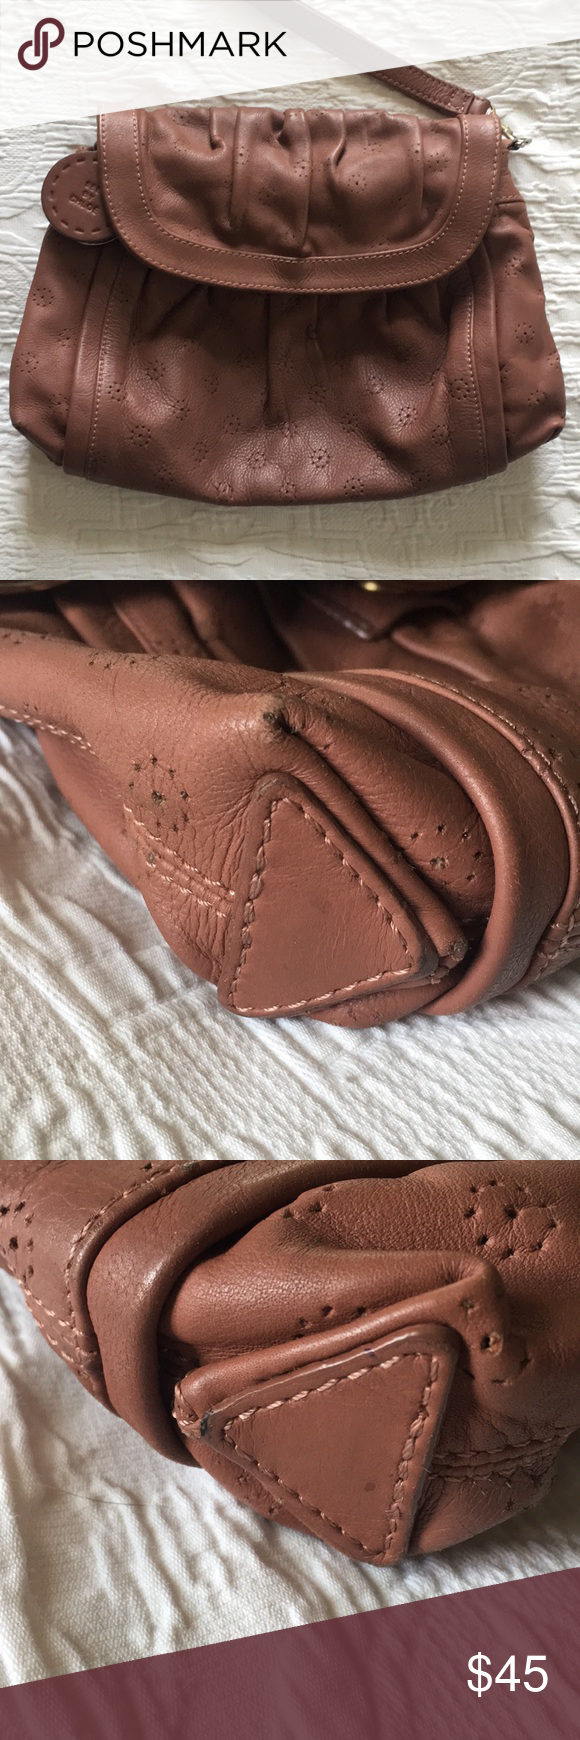 See by Chloe Clutch See by Chloe Clutch. Brownish pink color. Very soft leather. See pics for slight wear around corners and mark on inside of bag. See By Chloe Bags Clutches & Wristlets #seebychloe